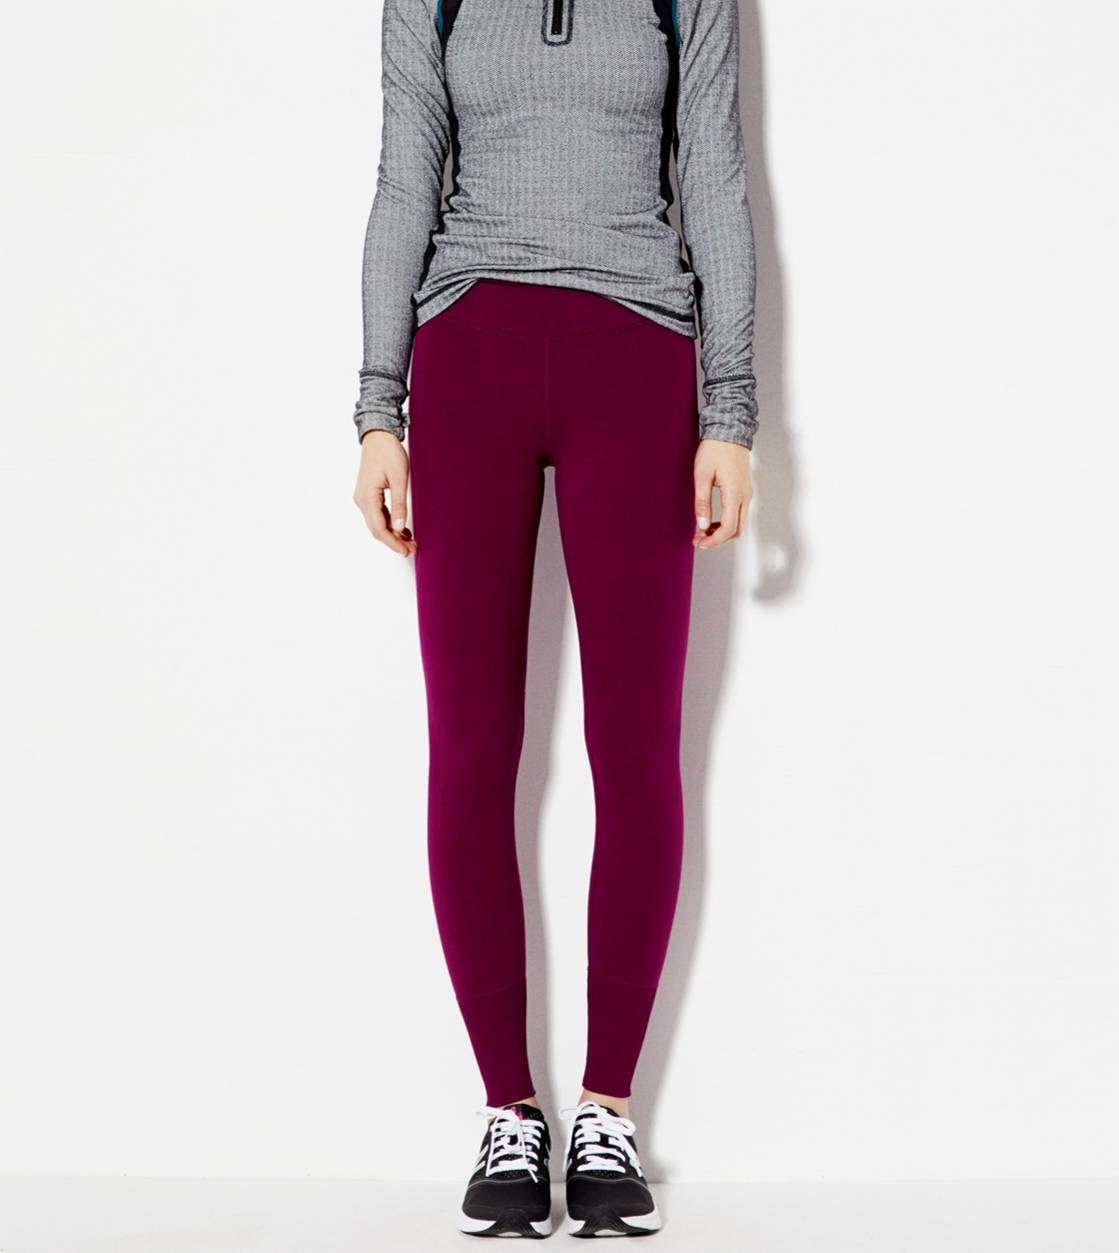 Wanderlust AEO Performance Winter Legging